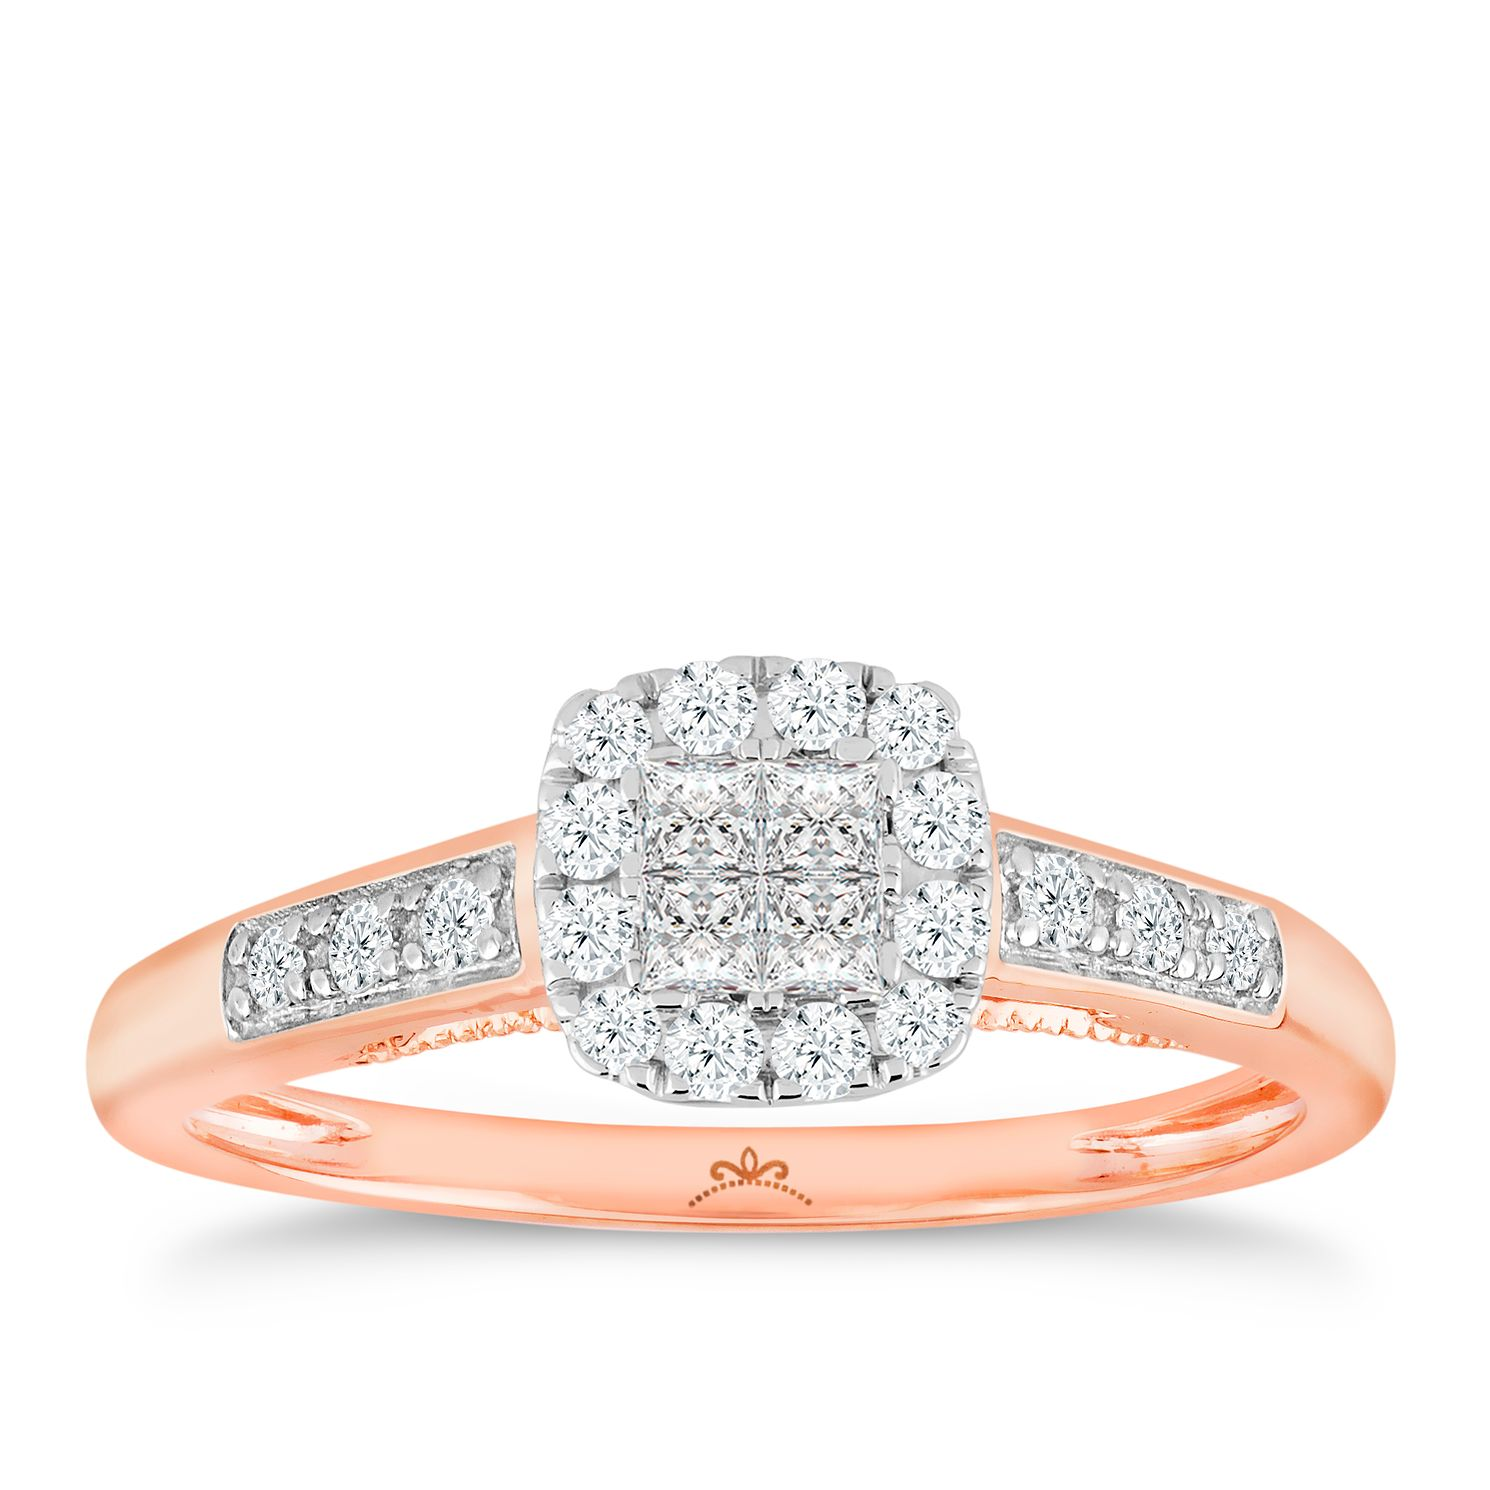 Princessa 9ct Rose Gold 1/3ct Diamond Ring - Product number 6230679